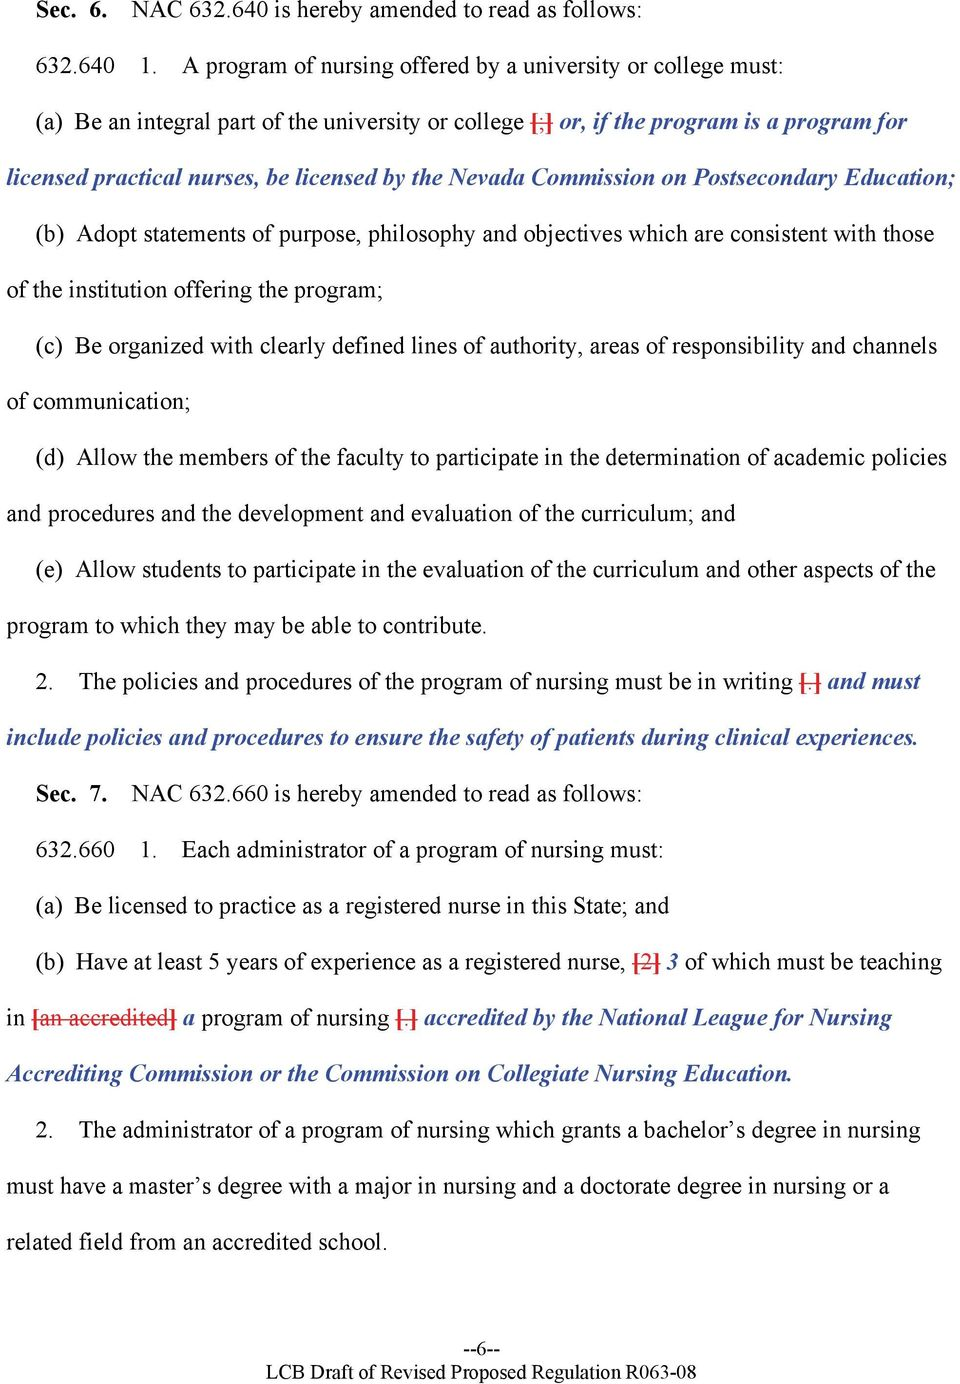 the Nevada Commission on Postsecondary Education; (b) Adopt statements of purpose, philosophy and objectives which are consistent with those of the institution offering the program; (c) Be organized